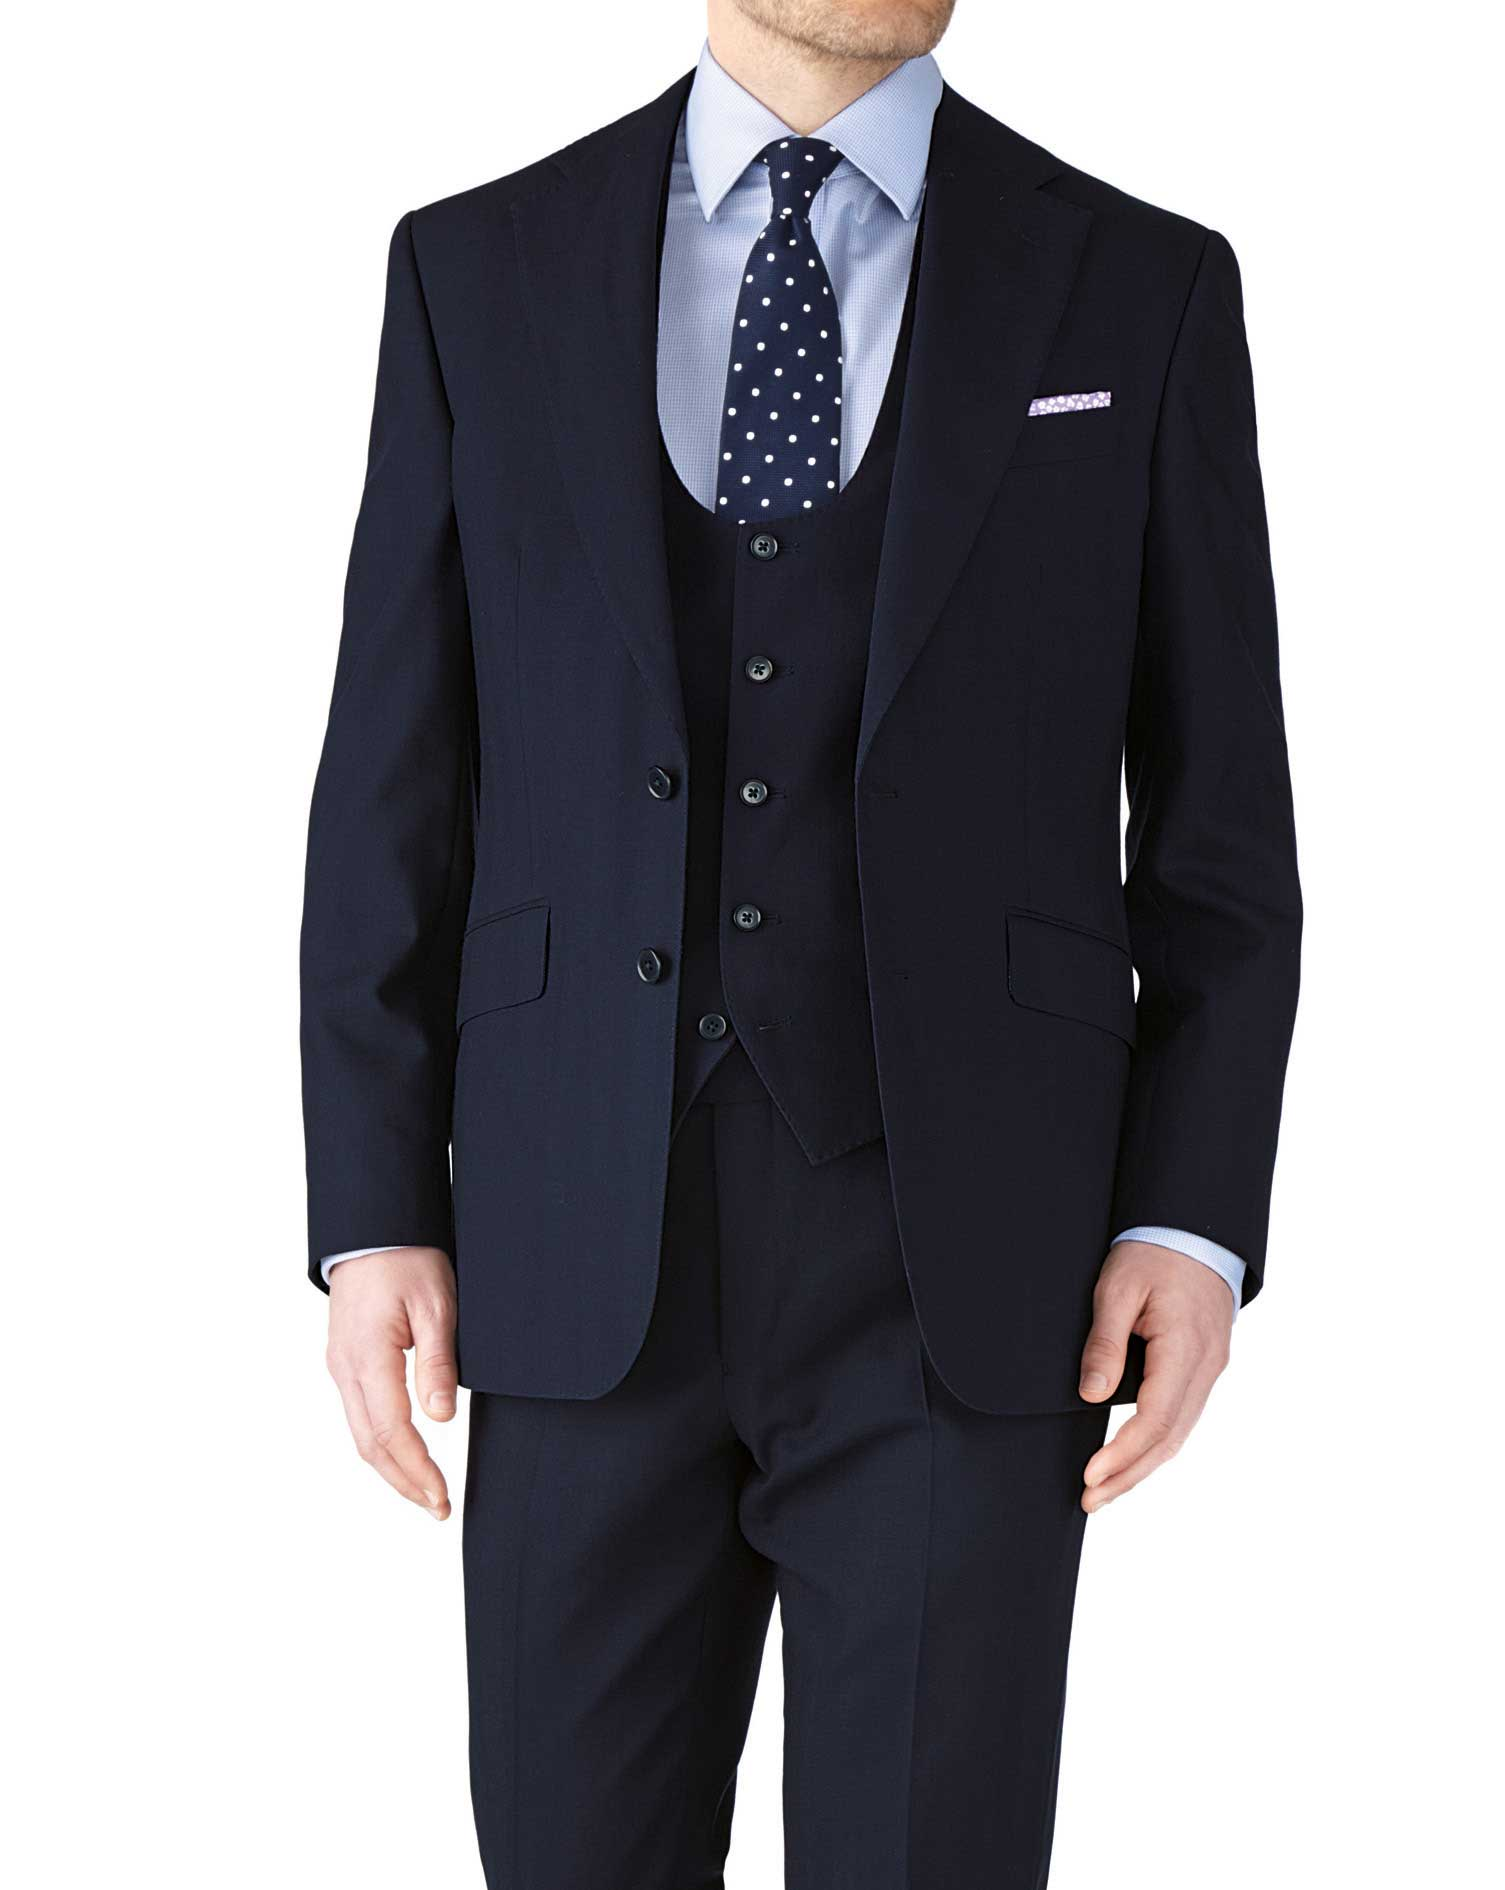 Navy Classic Fit Herringbone Business Suit Wool Jacket Size 44 Long by Charles Tyrwhitt